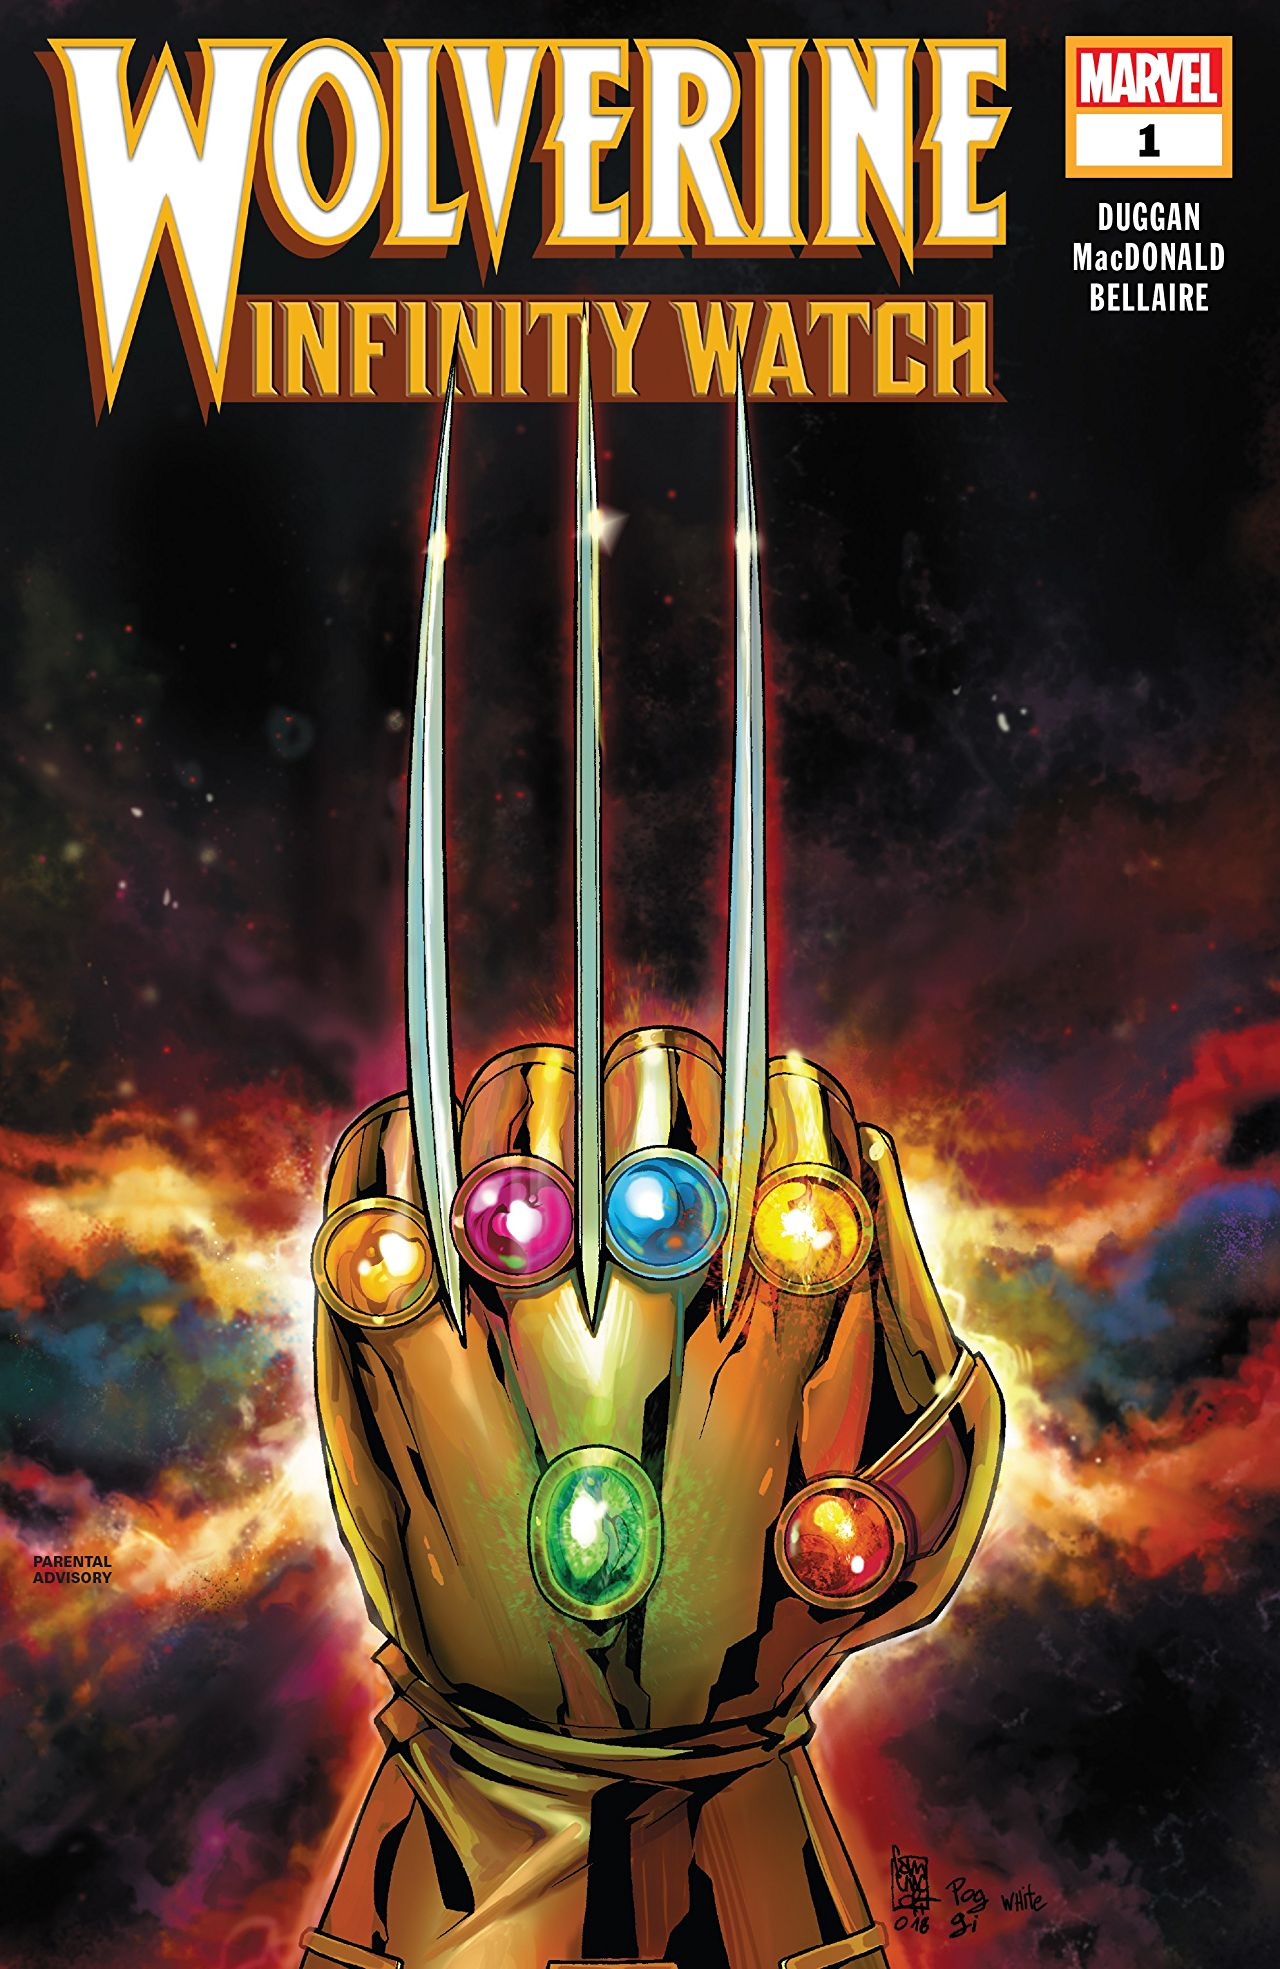 Marvel Preview: Wolverine: Infinity Watch #1